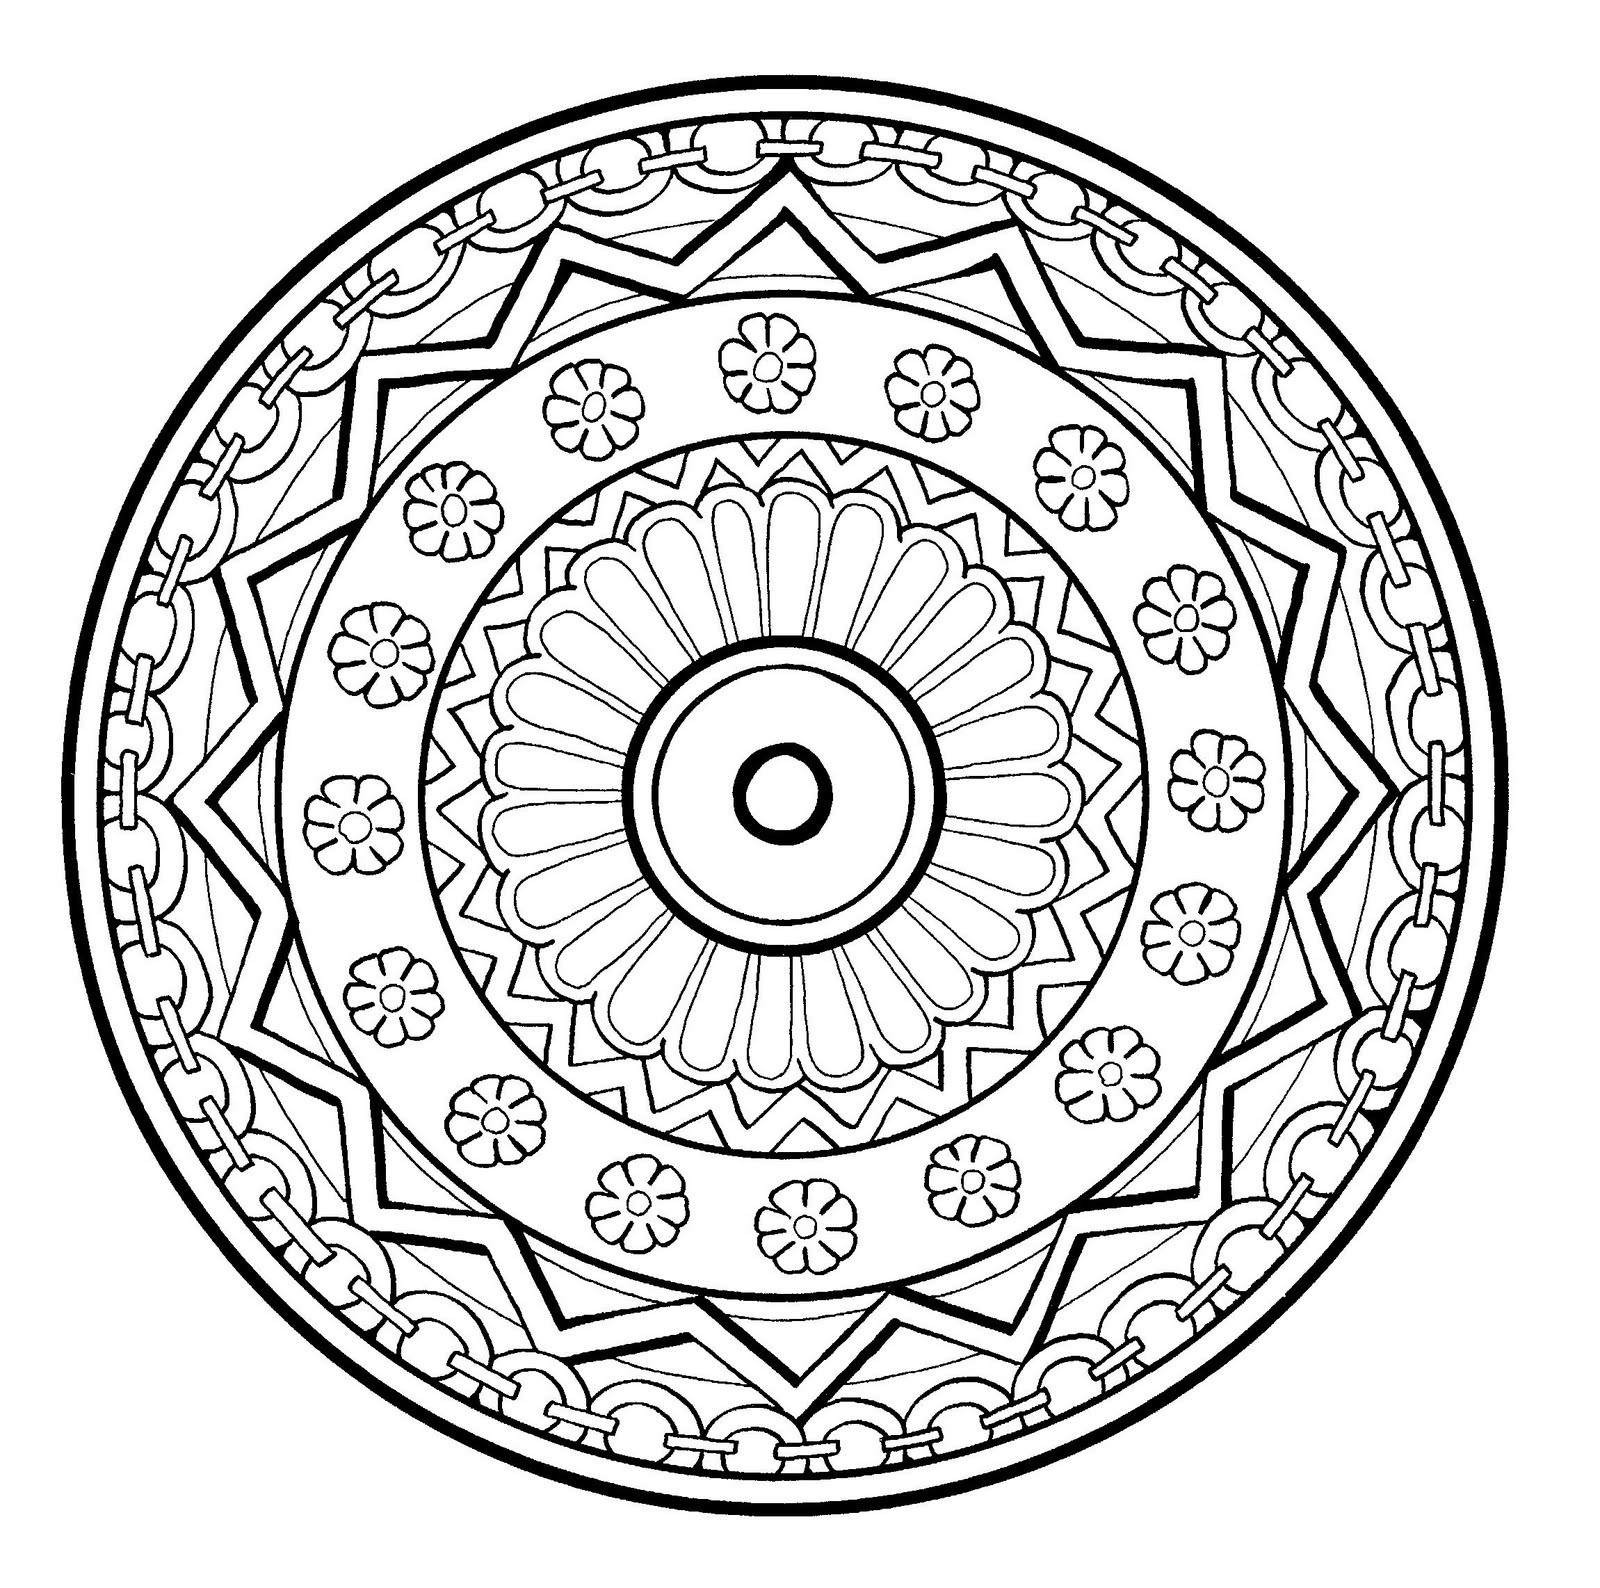 Free Printable Mandala Coloring Pages For Adults  28 Free Printable Mandala Coloring Pages for Adults